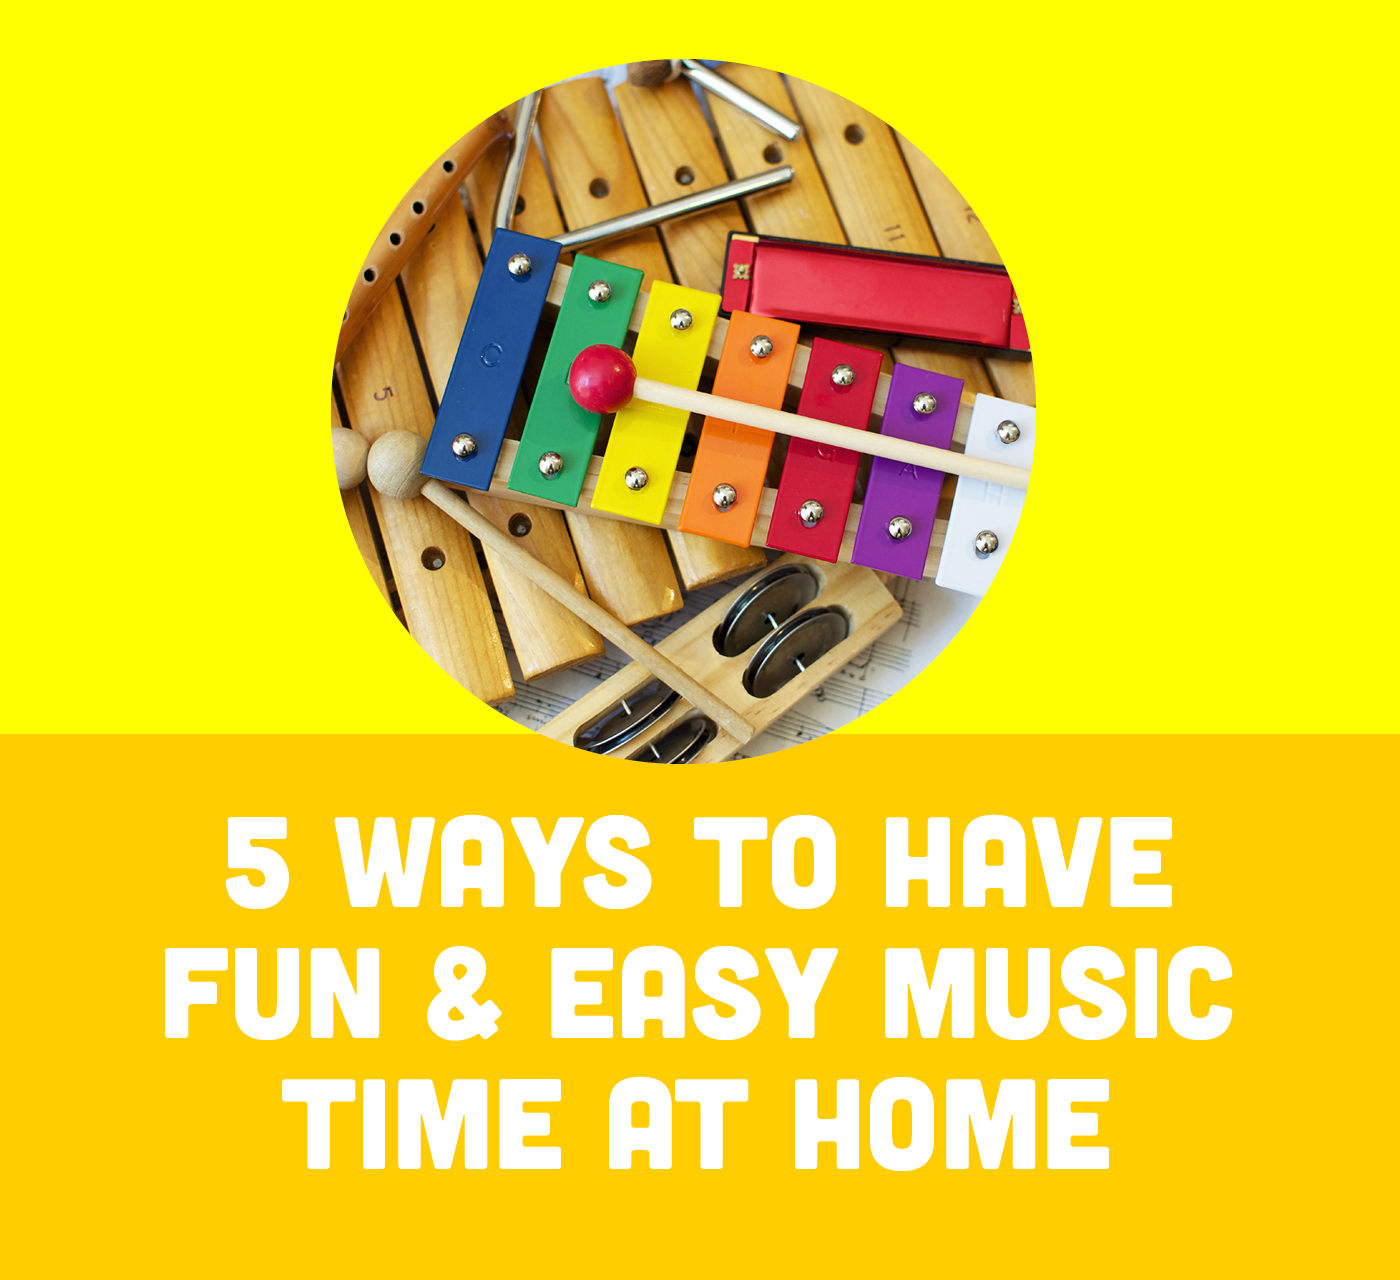 5 Ways to Have Easy & Fun Music Time At Home